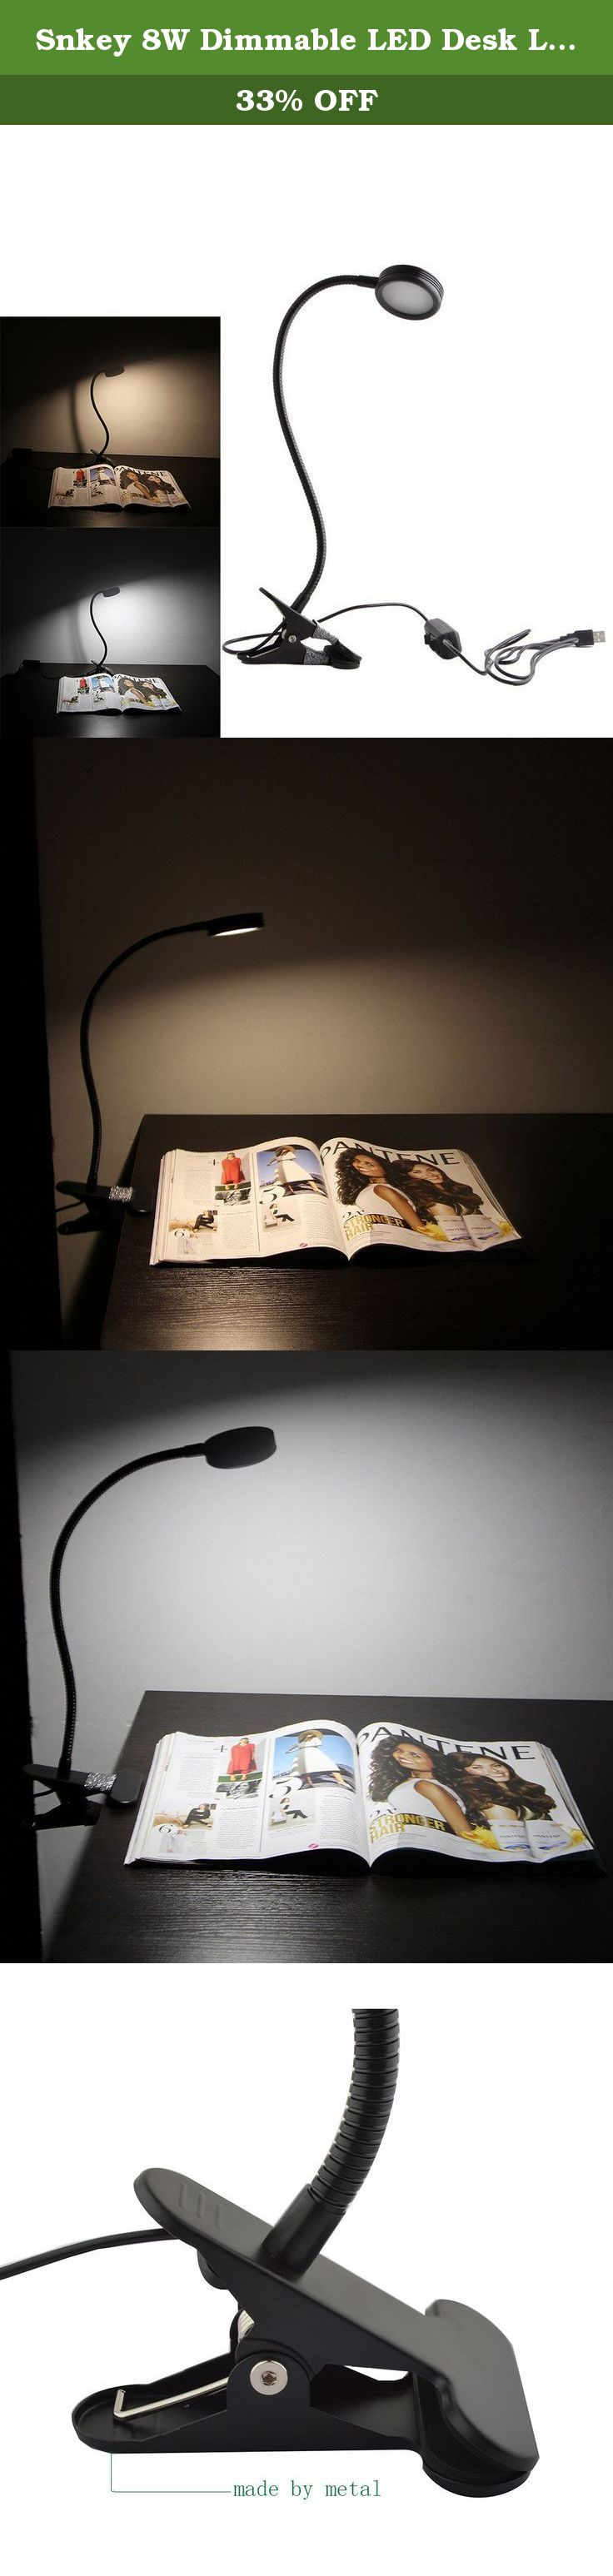 snkey 8w dimmable led desk lamp 3 dimmable light color